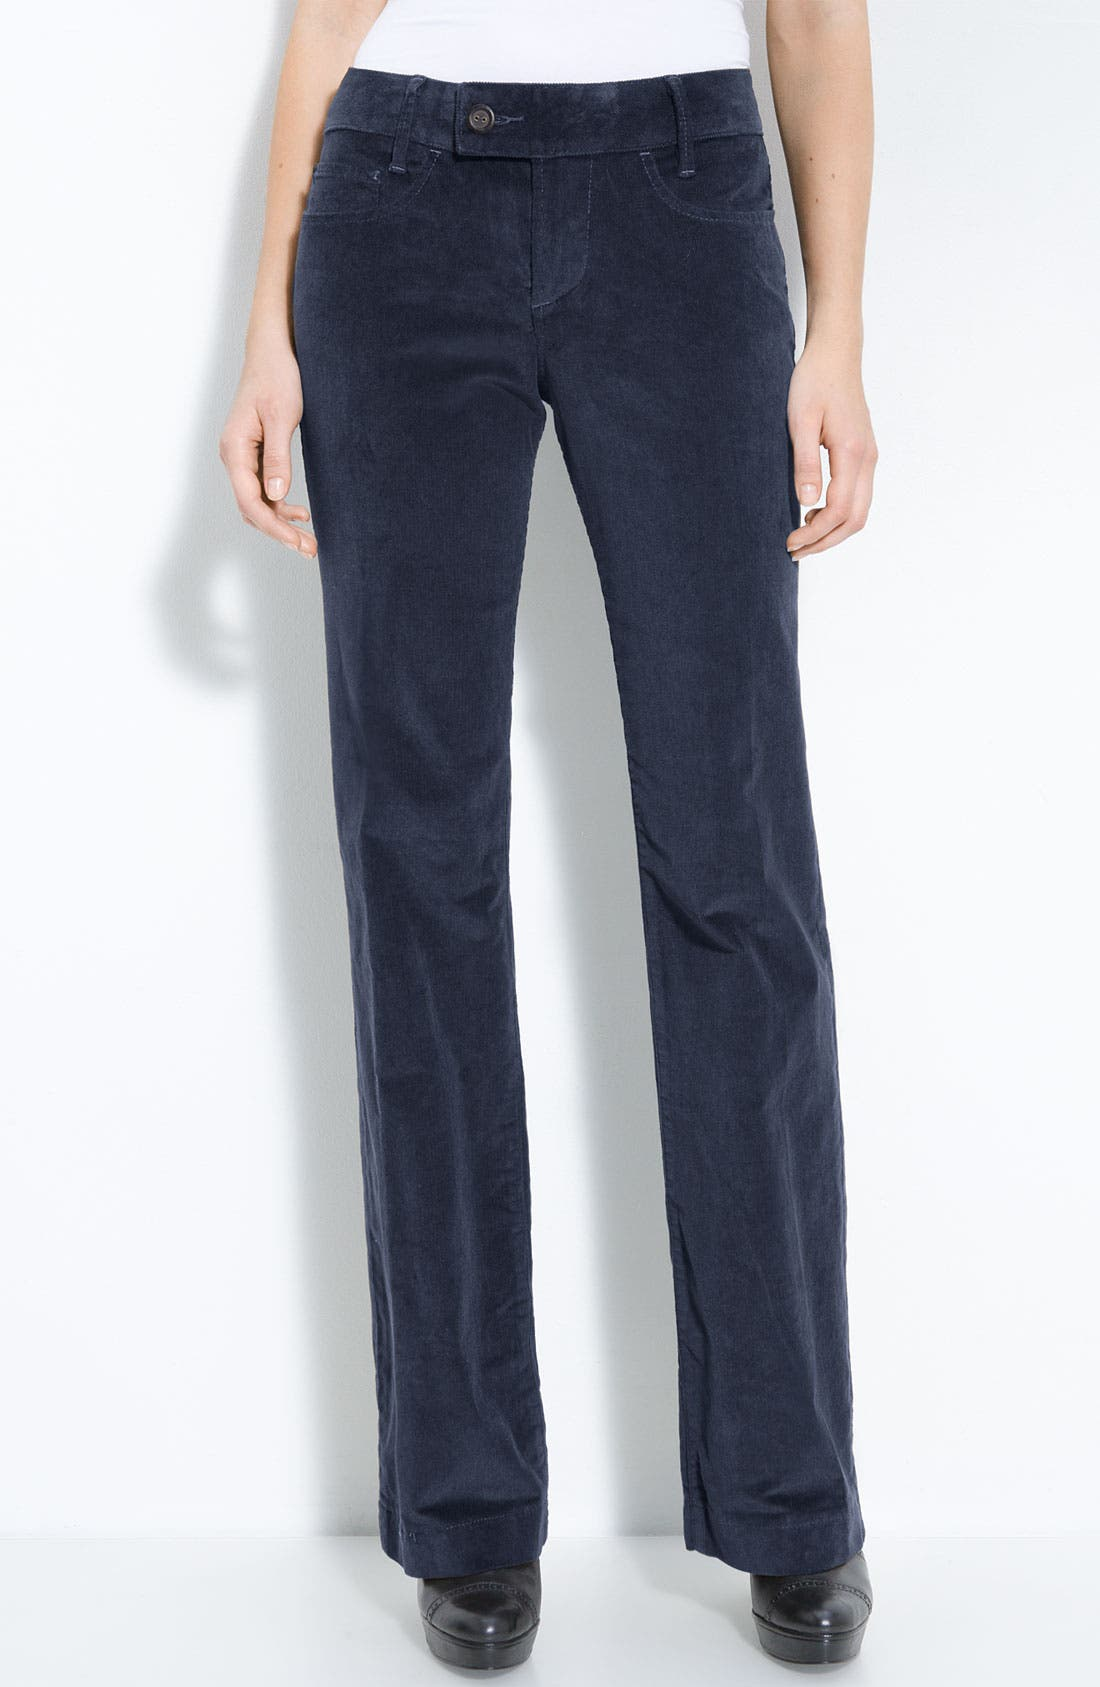 Alternate Image 1 Selected - Jag Jeans 'Jewel' Corduroy Trousers